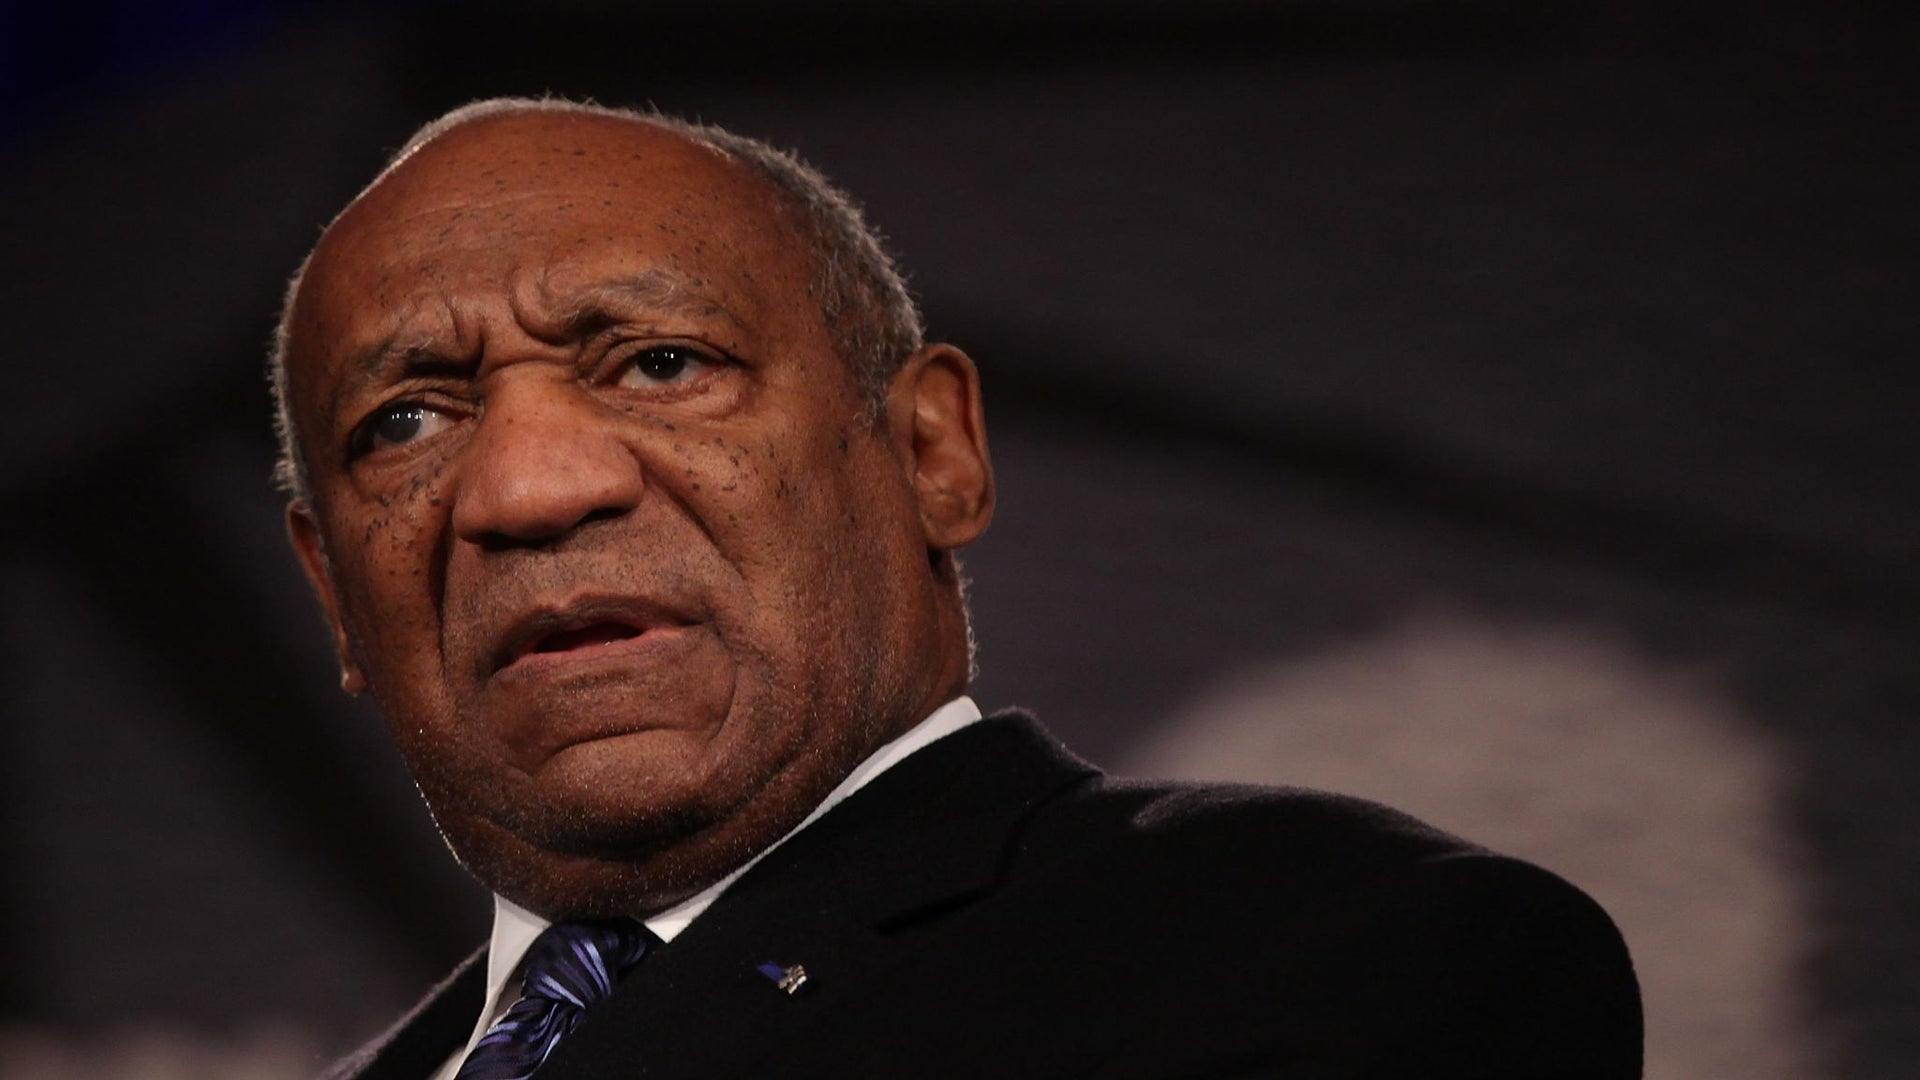 Bill Cosby Files Lawsuit Against Seven Accusers